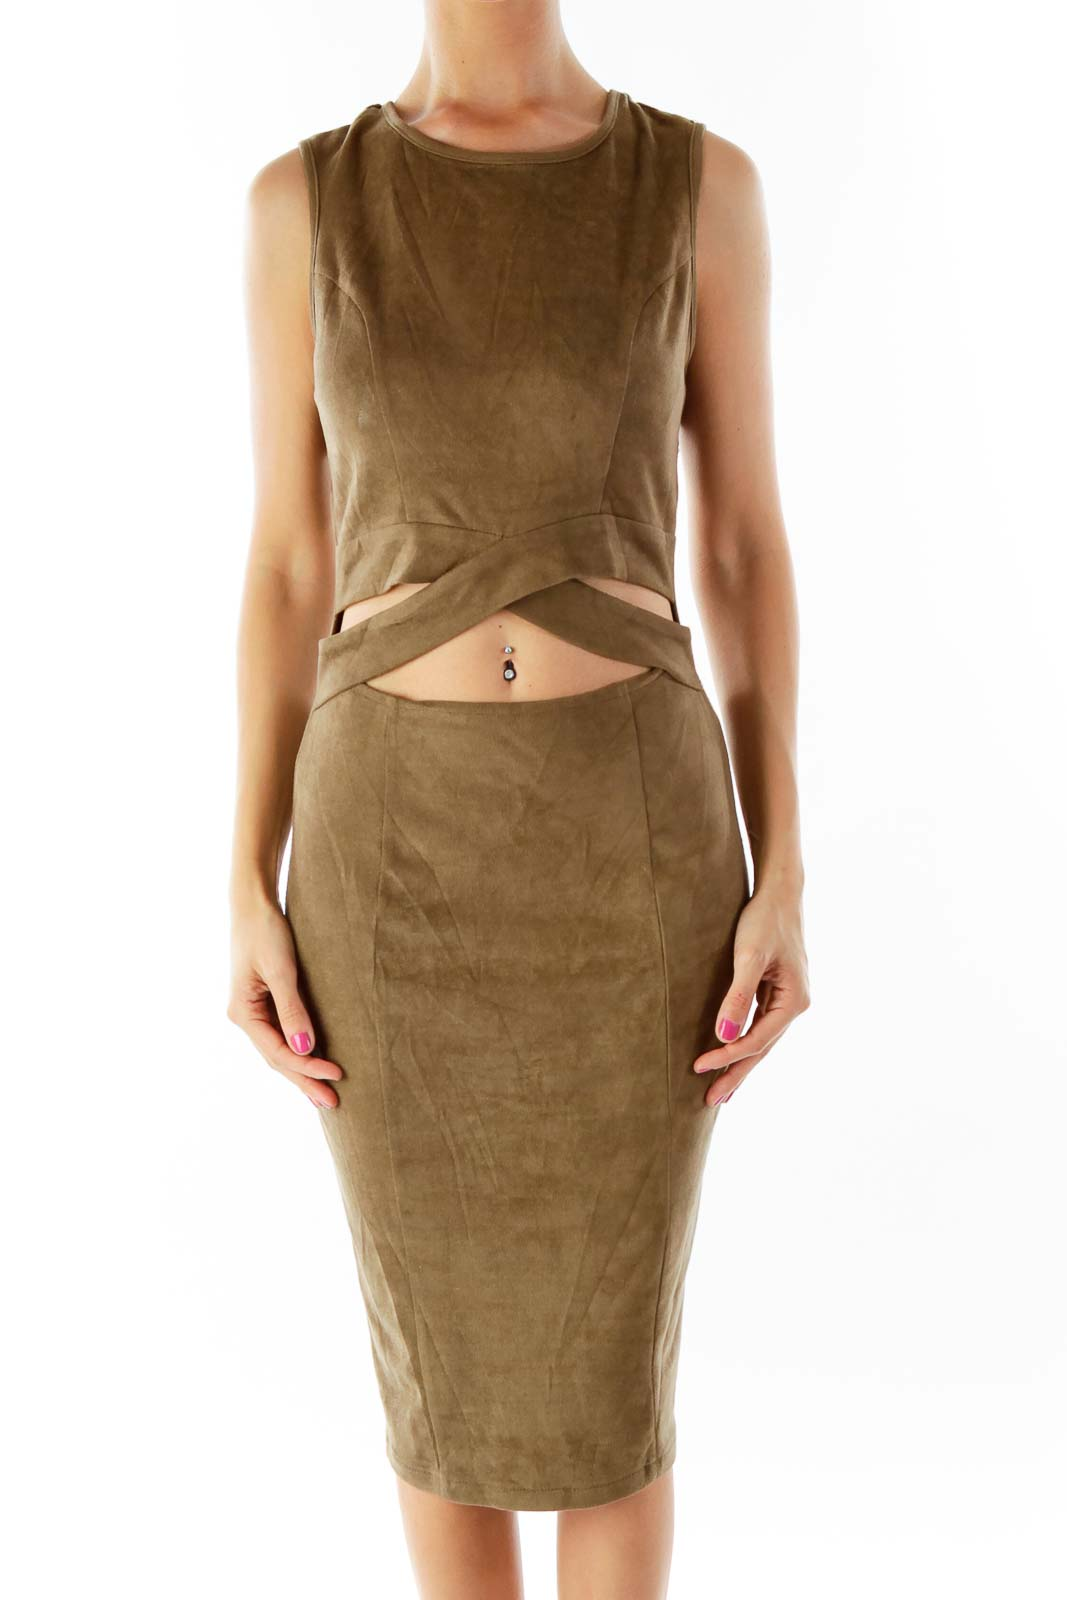 Olive Green Suede Cocktail Dress Front